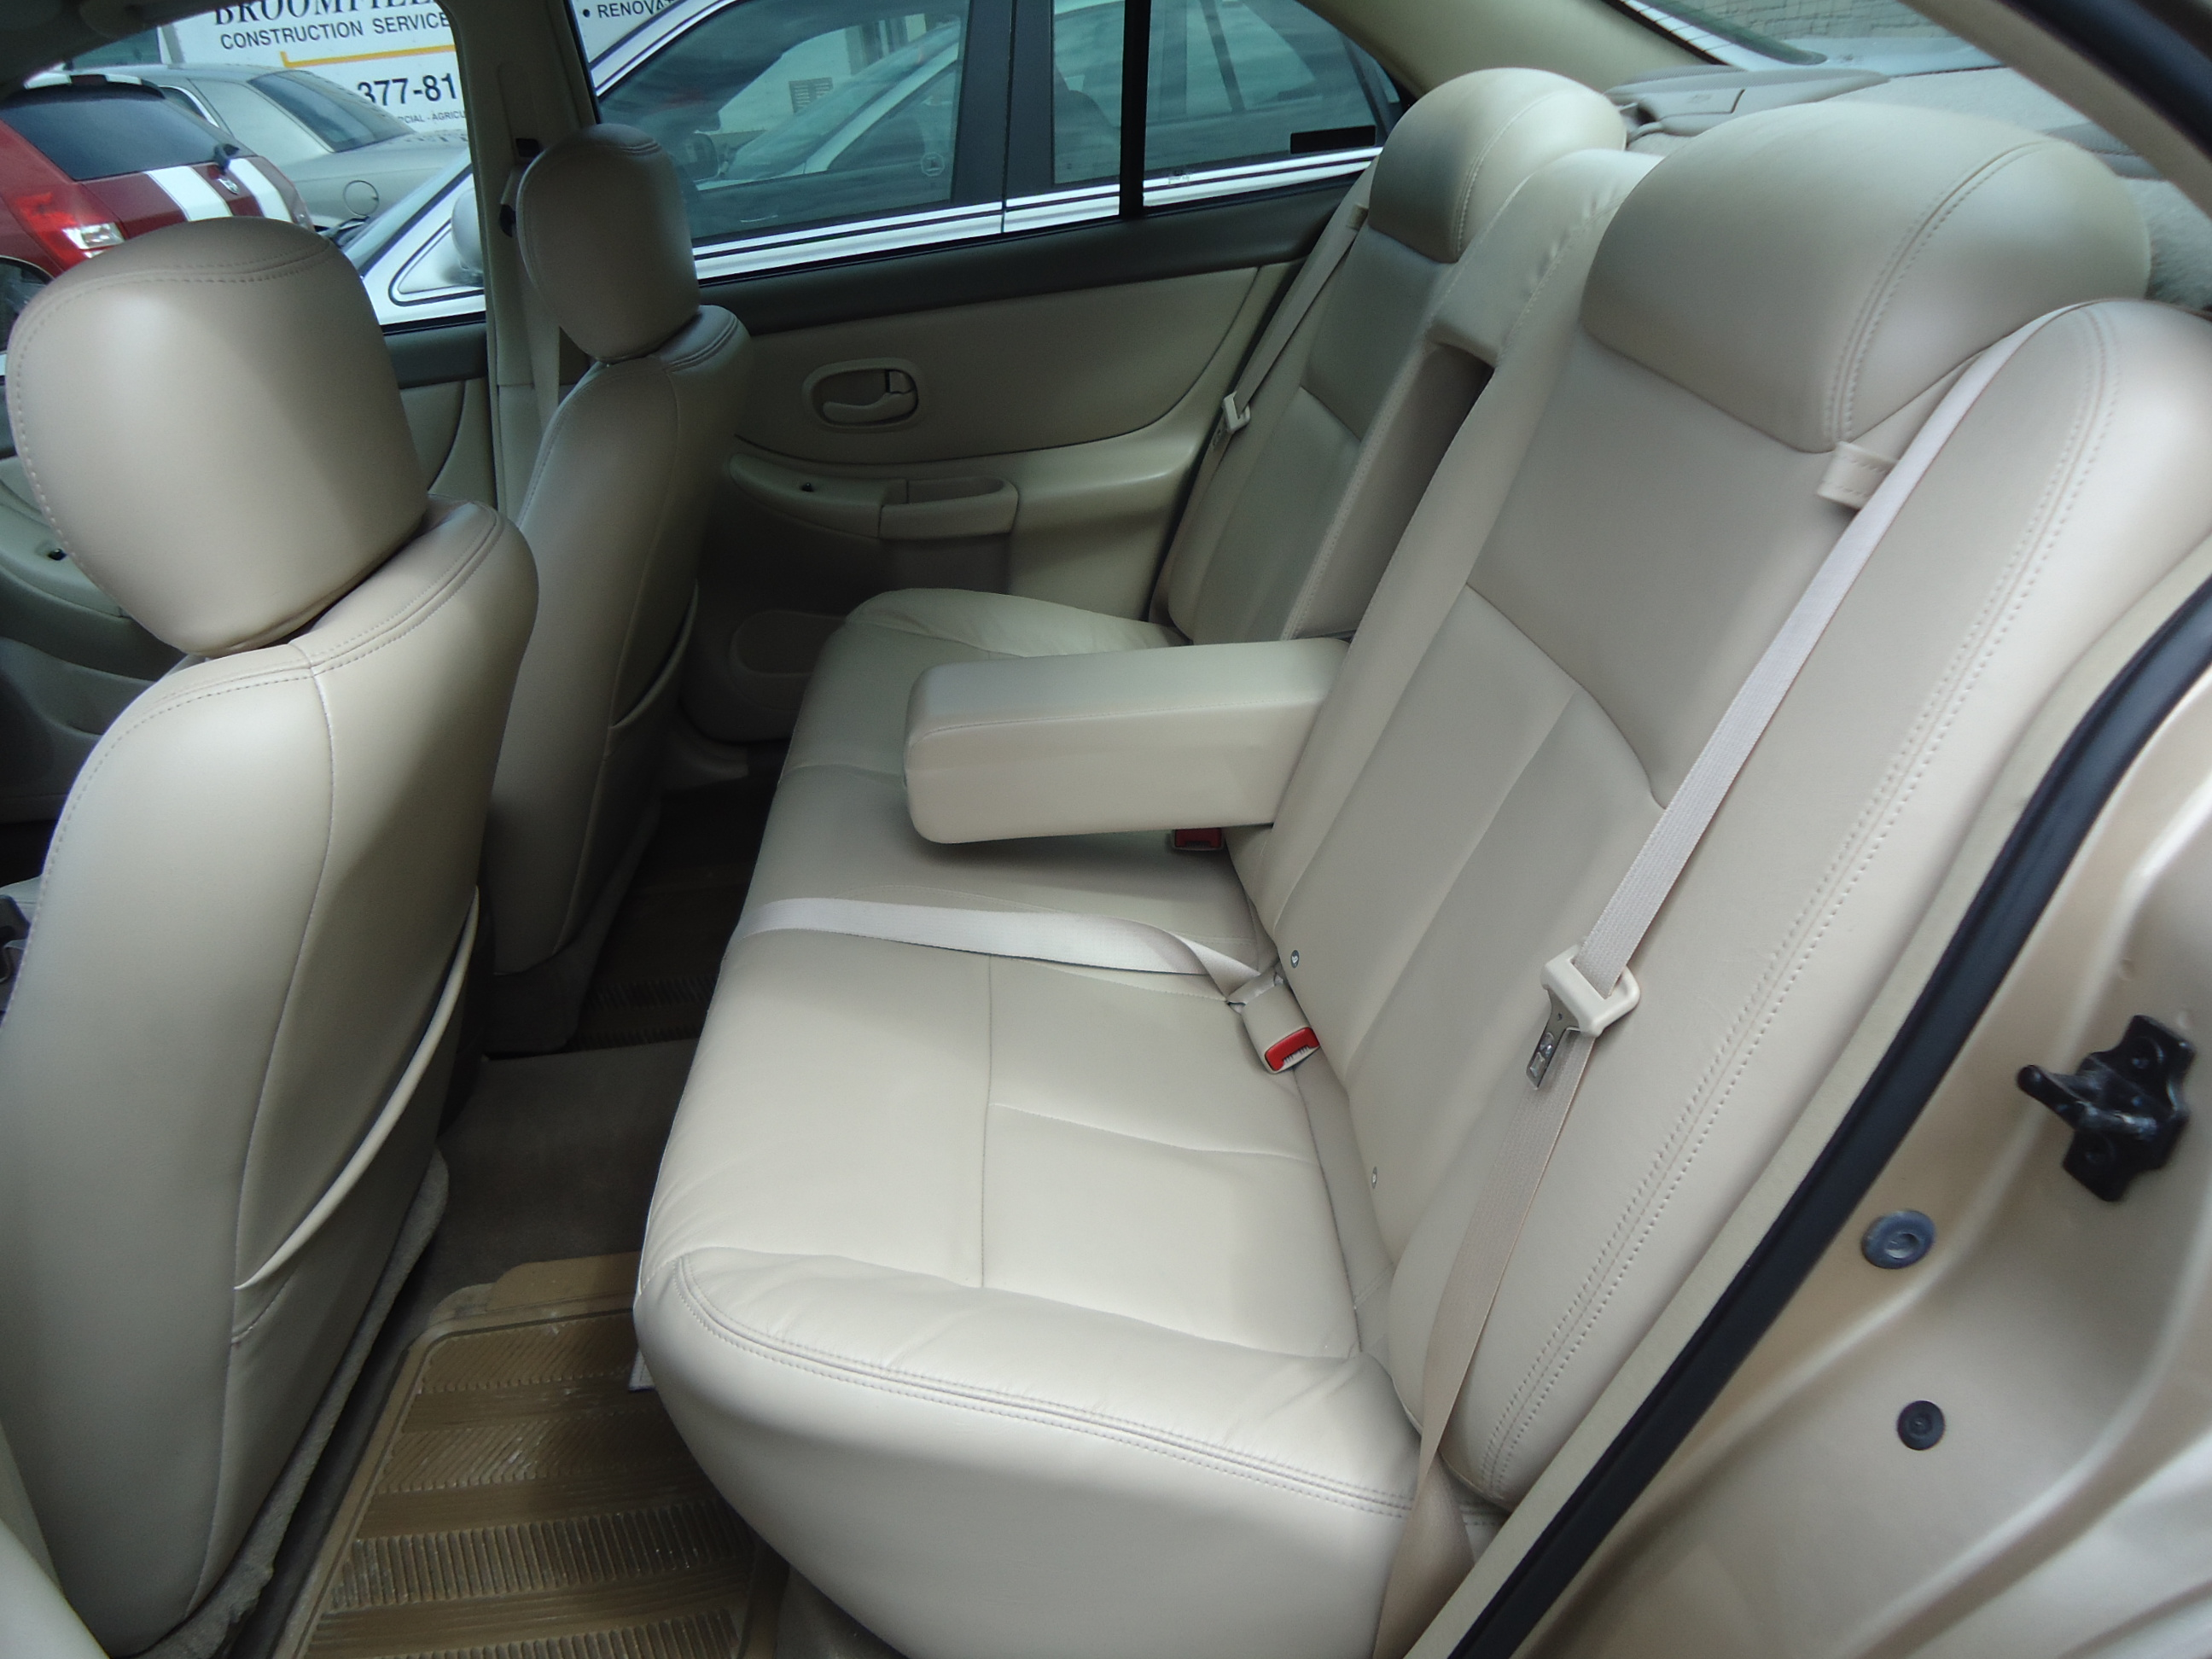 2002 OLDS INTRIGUE INTERIOR (1) | Bob Currie Auto Sales